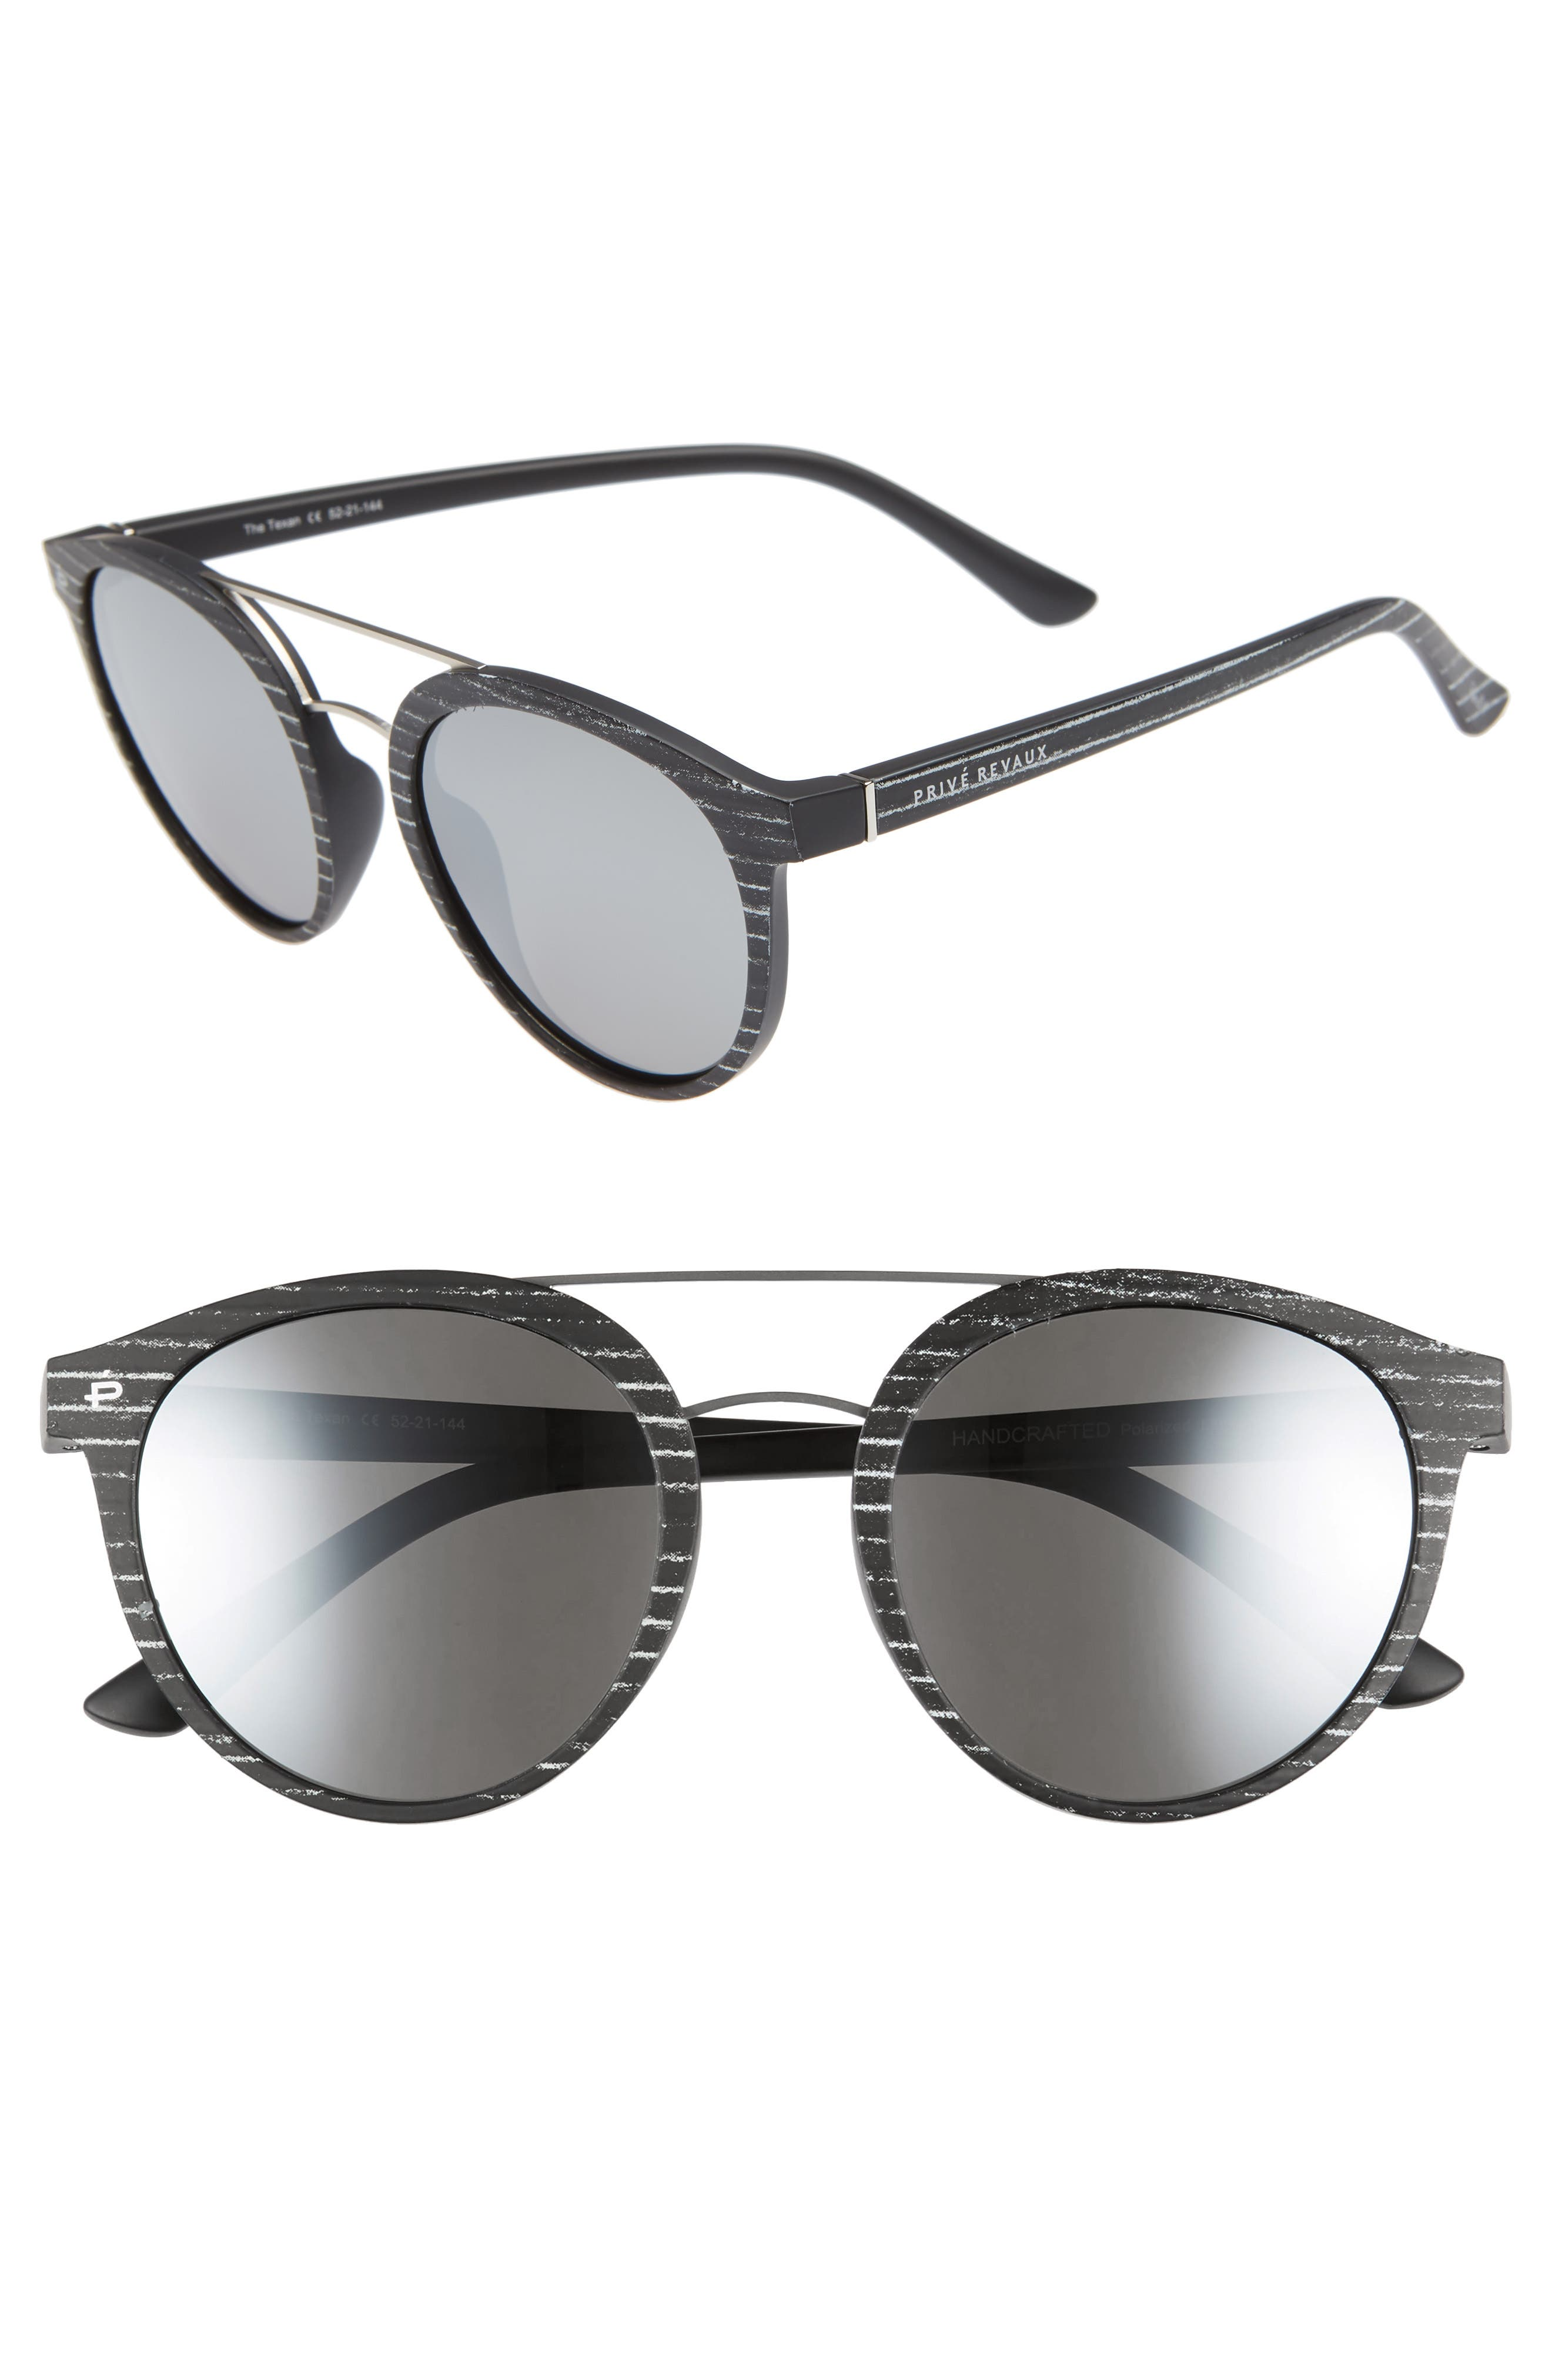 Privé Revaux The Texan 52mm Sunglasses,                             Main thumbnail 1, color,                             MATTE BLACK / PAPER